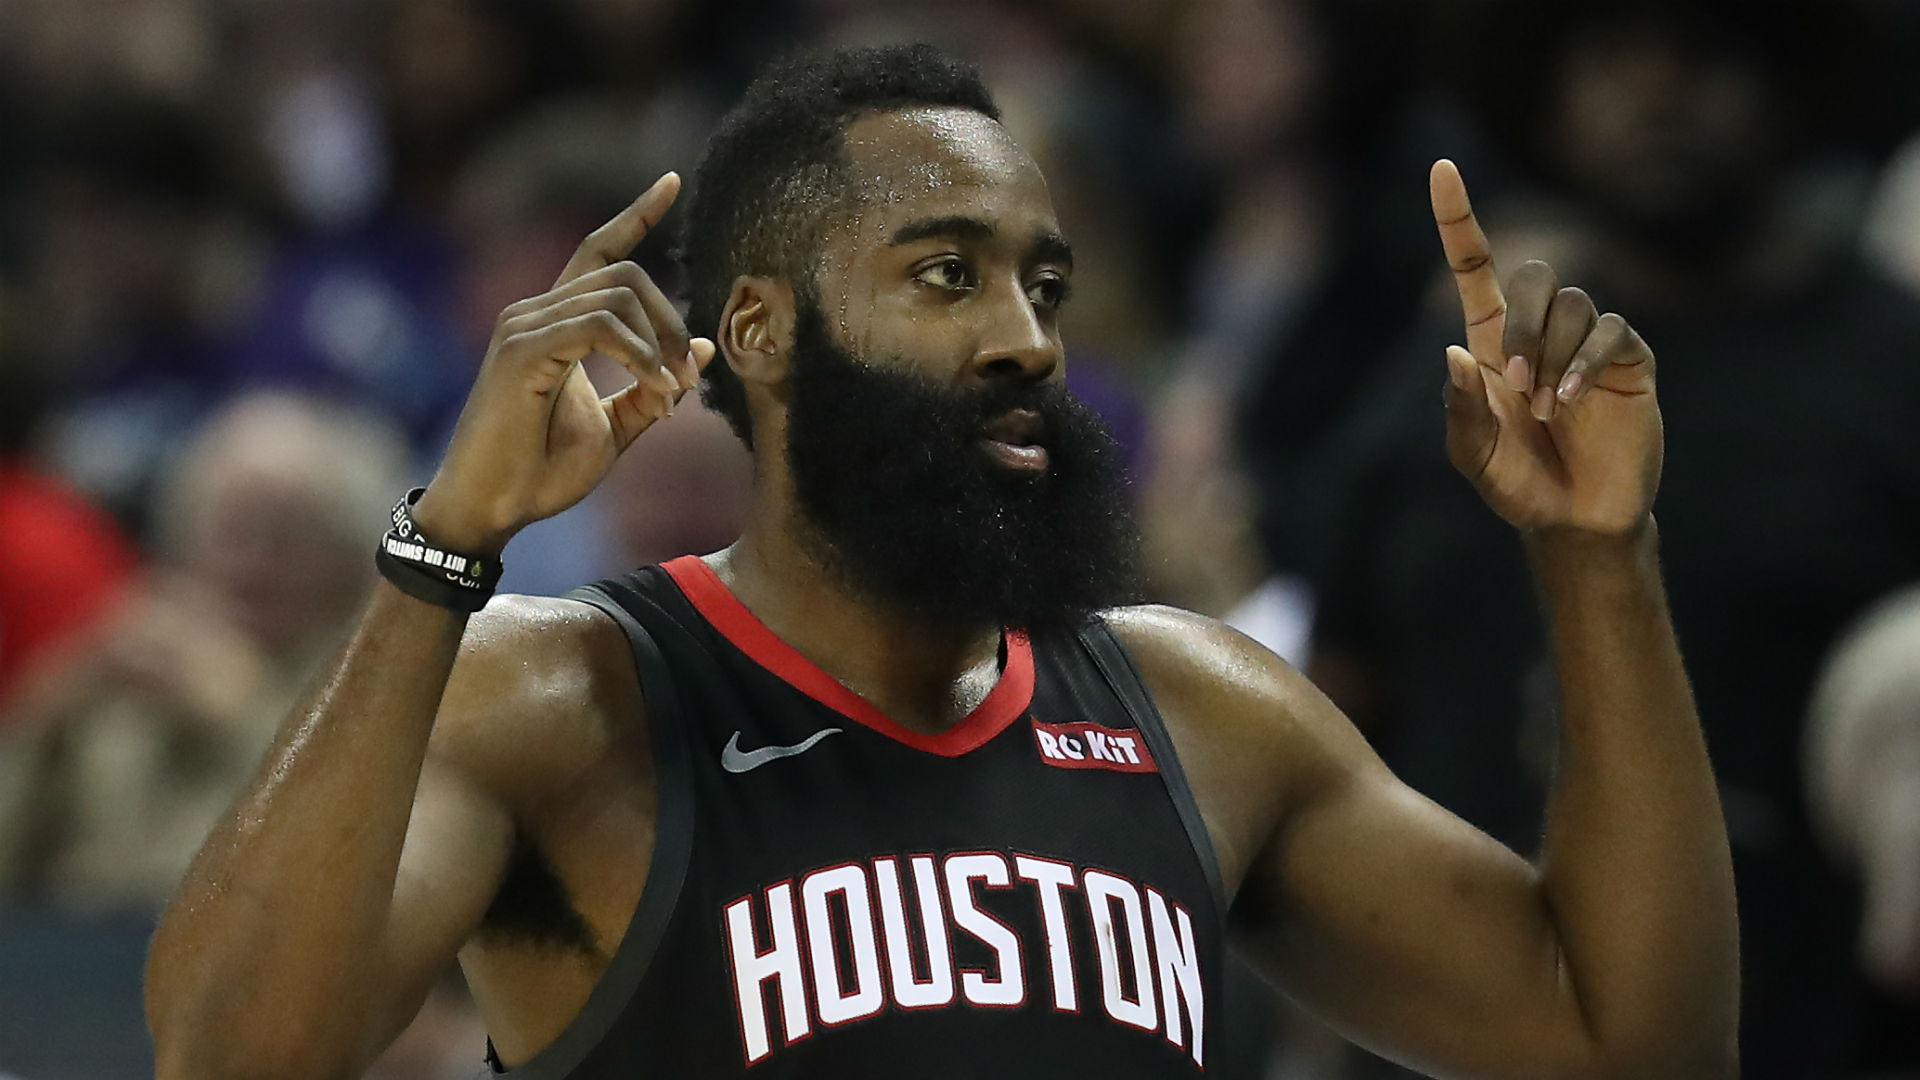 National Basketball Association superstar James Harden joins Dynamo and Dash ownership group in Houston